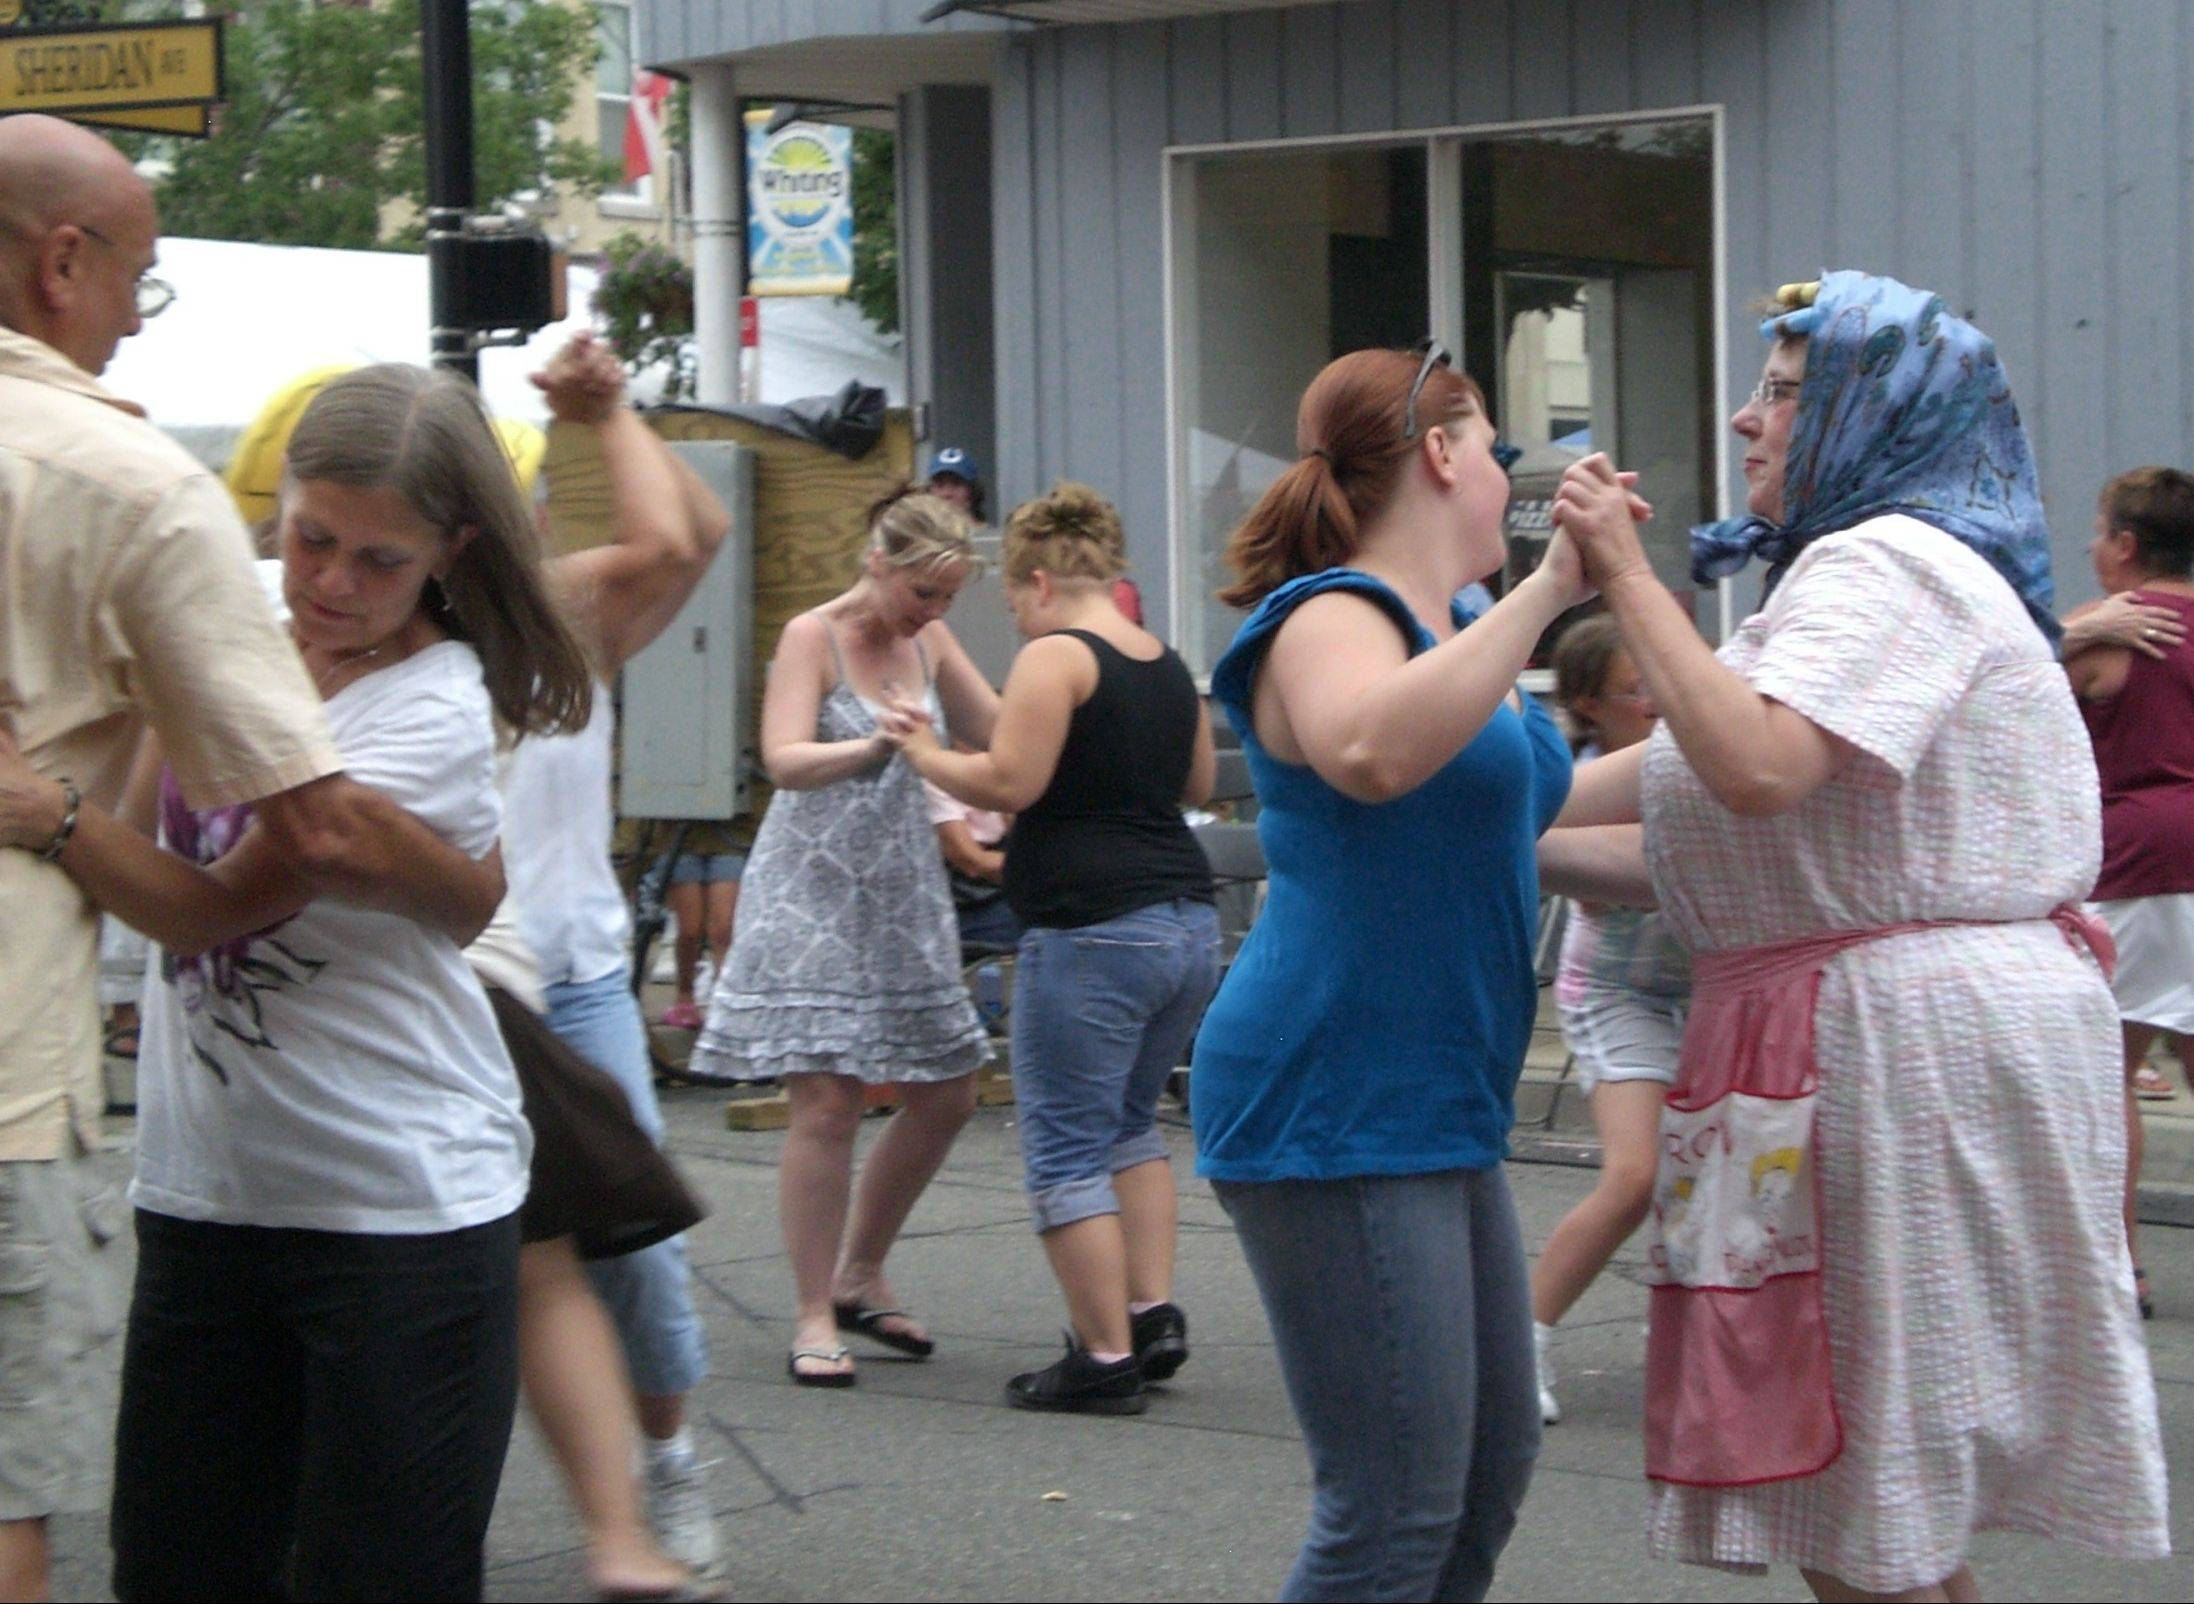 Everyone polkas at Pierogi Fest, which runs from Friday to Sunday, July 29-31, in Whiting, Ind.